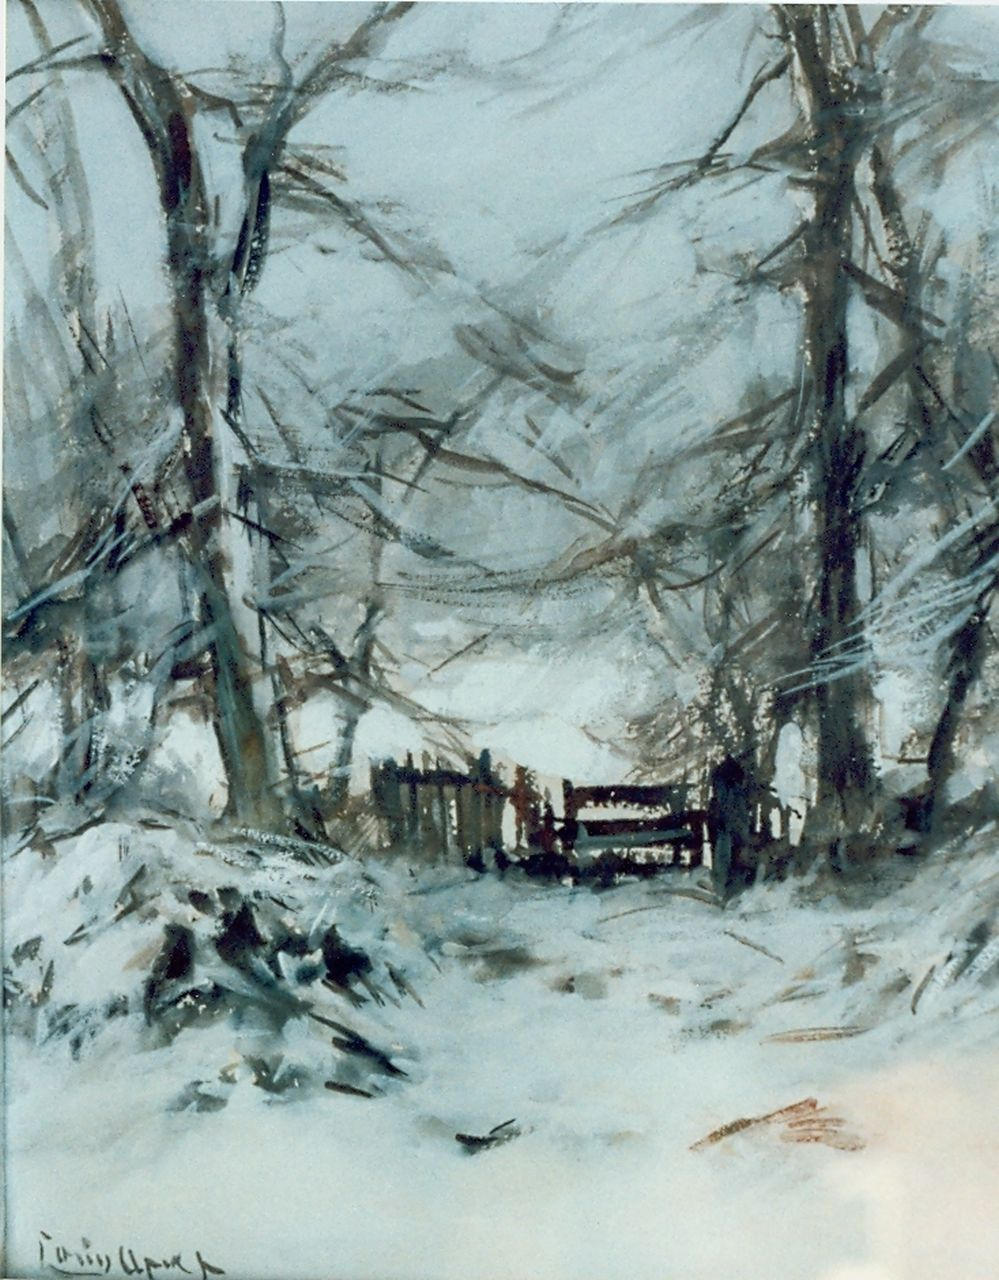 Apol L.F.H.  | Lodewijk Franciscus Hendrik 'Louis' Apol, A snow-covered landscape, watercolour on paper